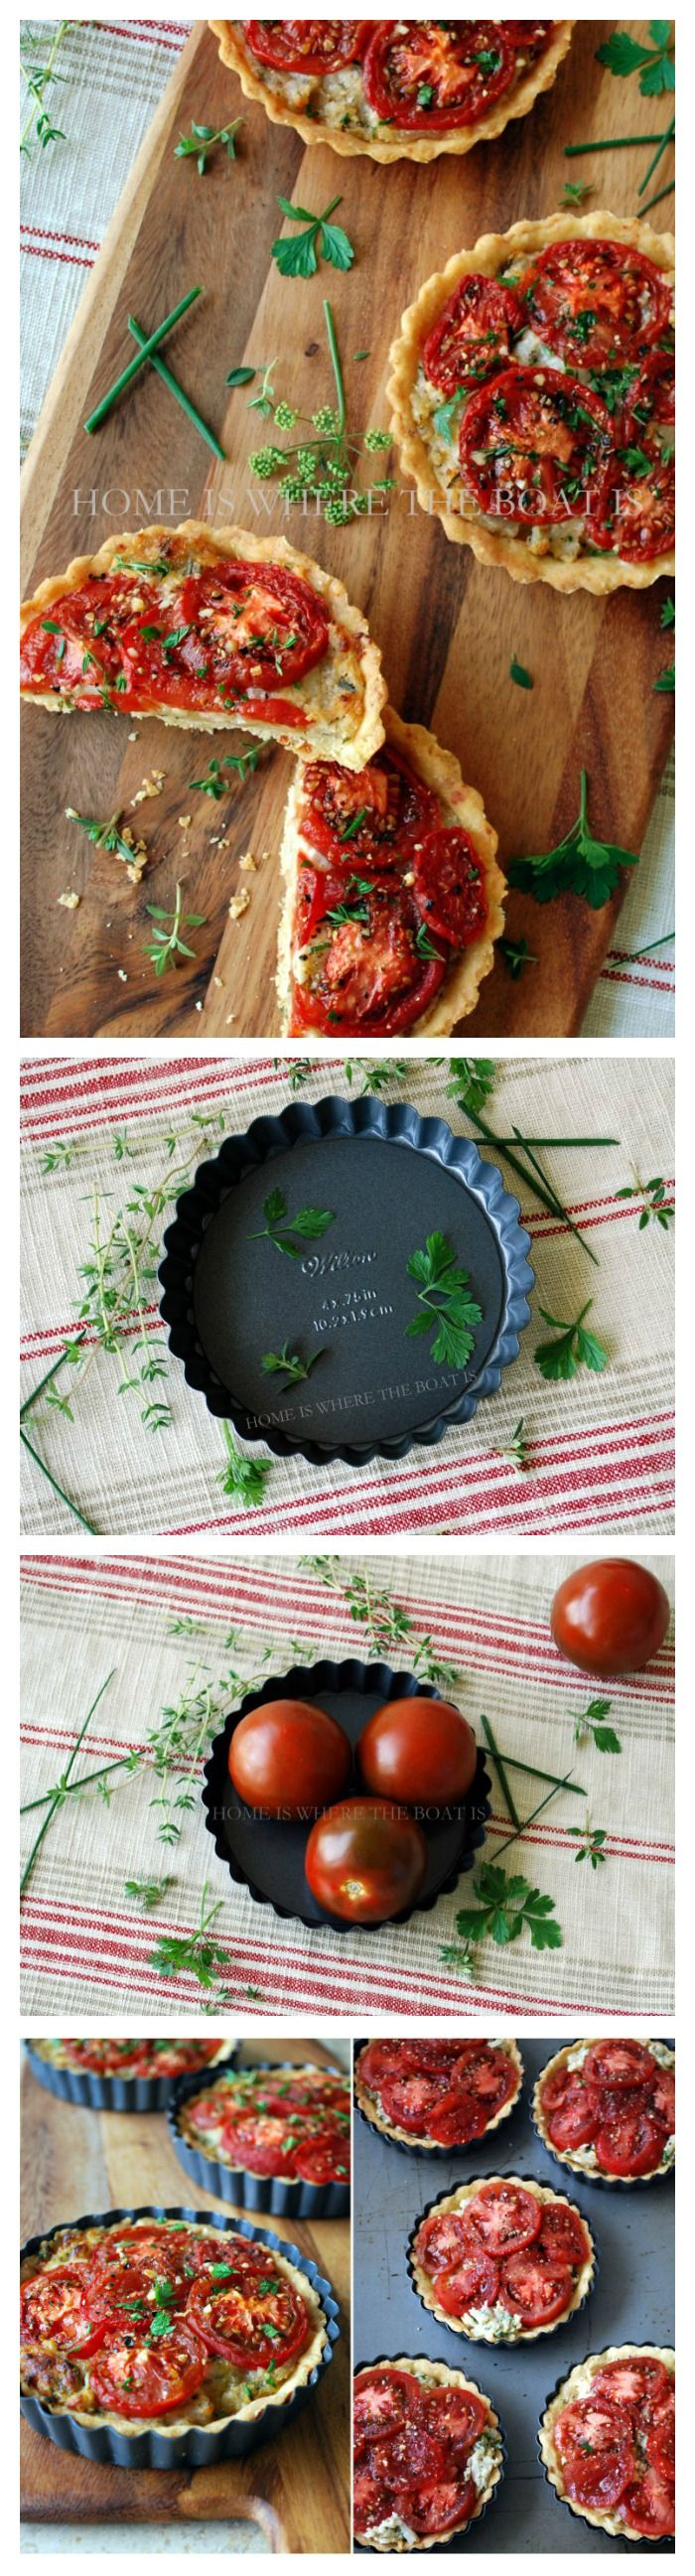 Mini Tomato Tarts! Caramelized onion, shredded mozzarella, bread crumbs and herbs are topped with tomatoes in a flaky cornmeal-manchego cheese crust!   homeiswheretheboatis.net #tomato #summer #recipe